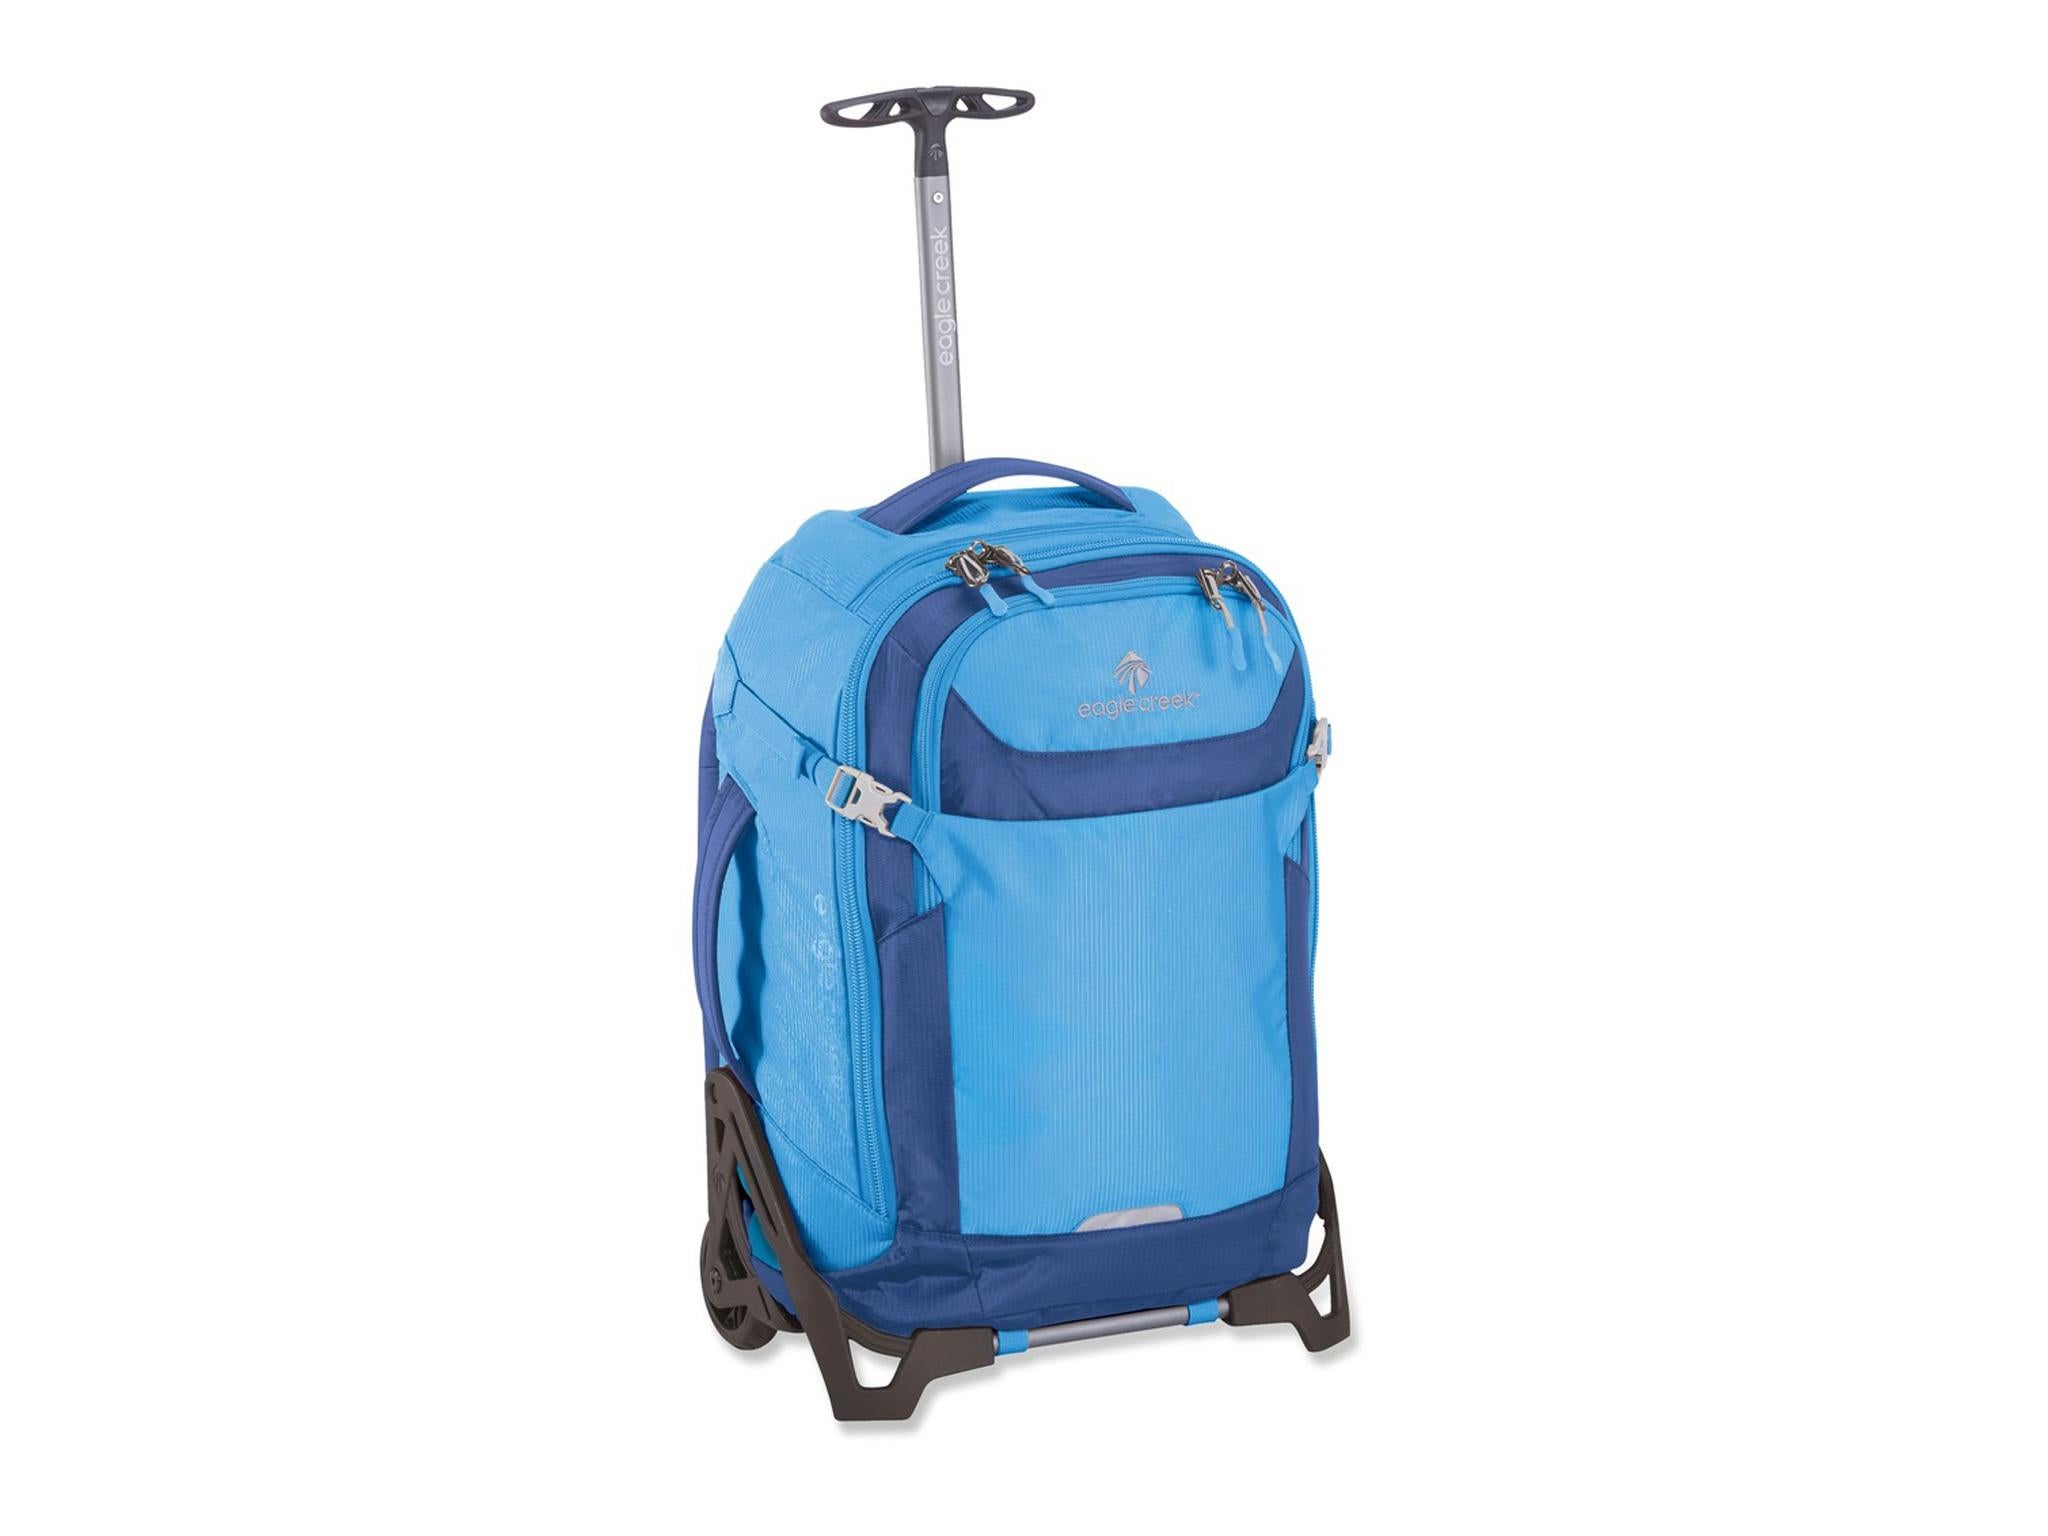 7 Best Wheeled Travel Bags The Independent Blue Corner Classic Lightweight Duffel Navy For Unpredictable Environments This Super